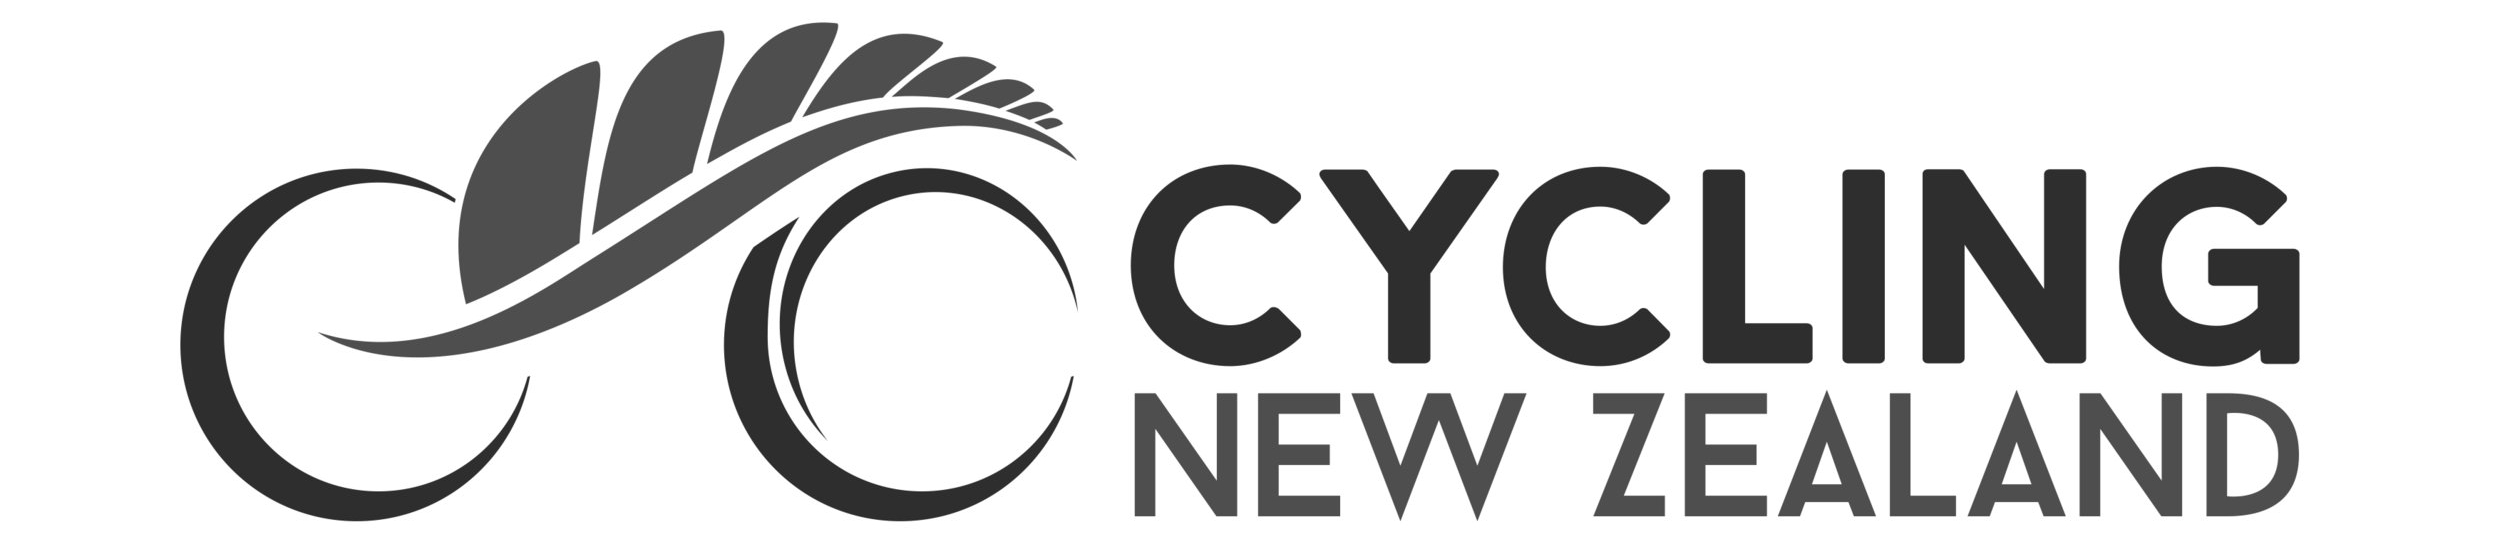 Cycling-NZ-Logo-Landscape.jpg